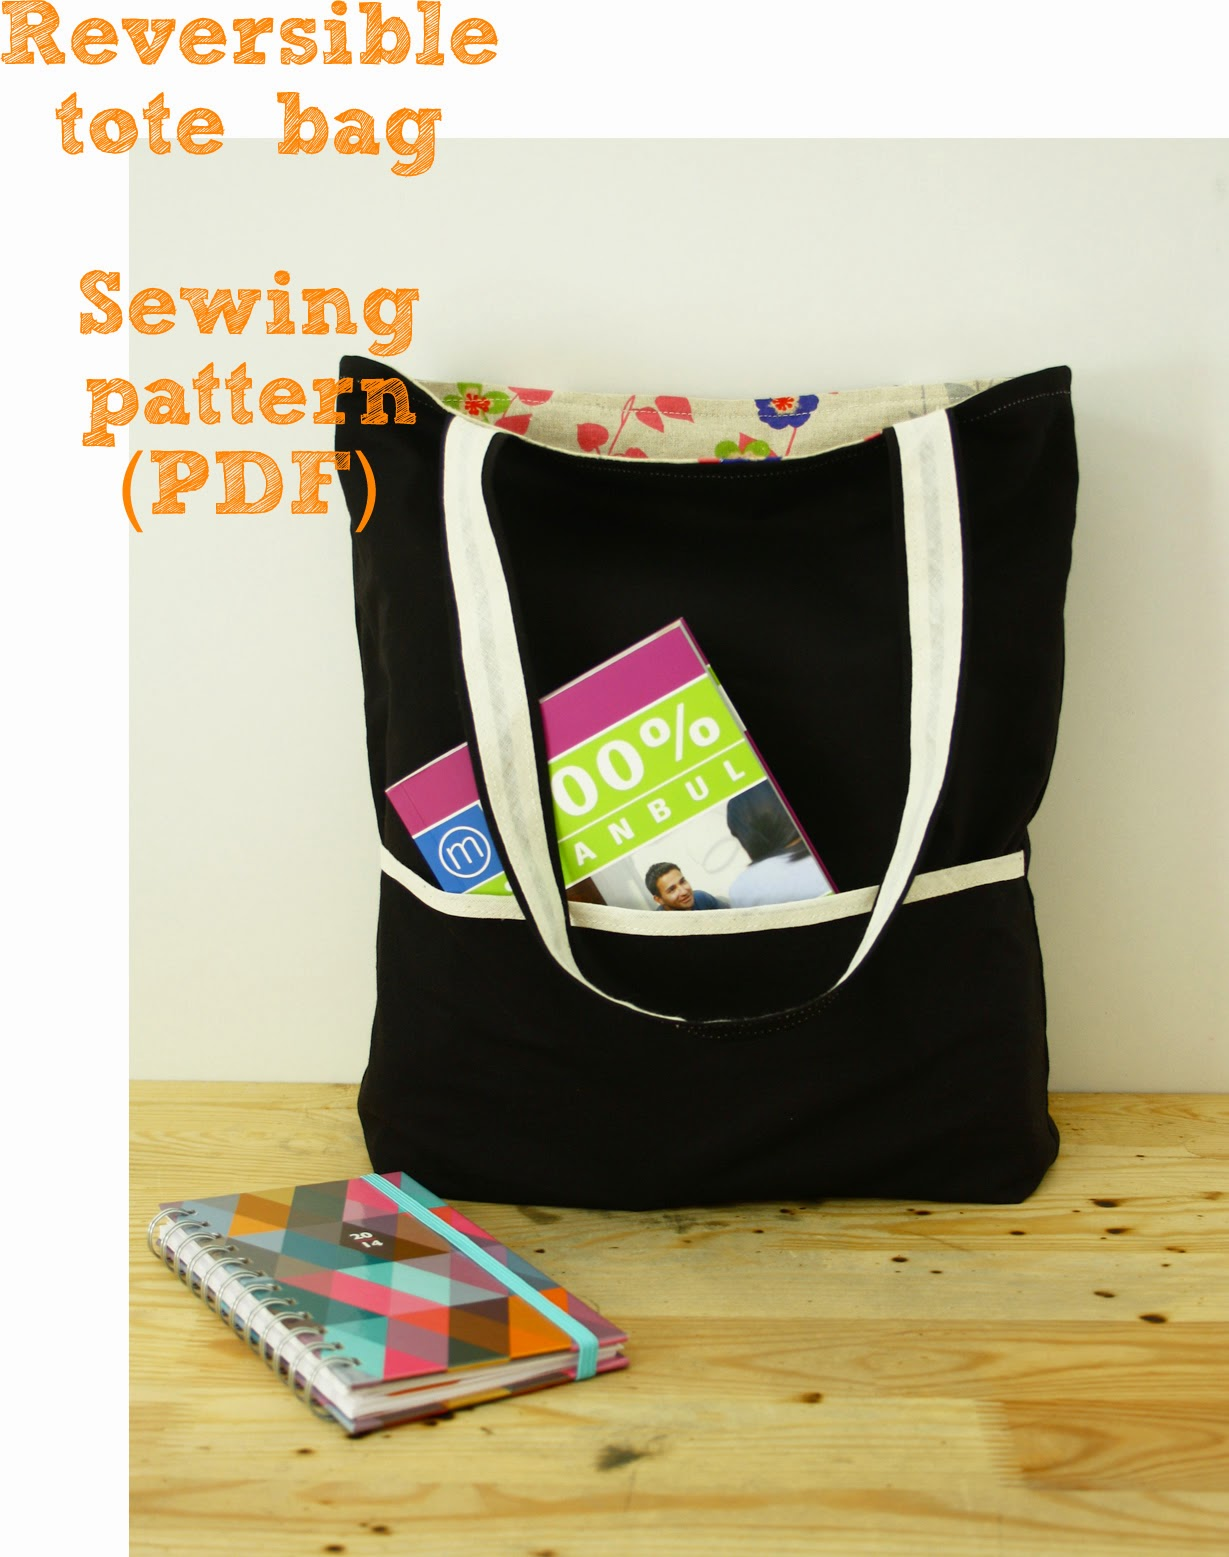 Reversible tote sewing pattern